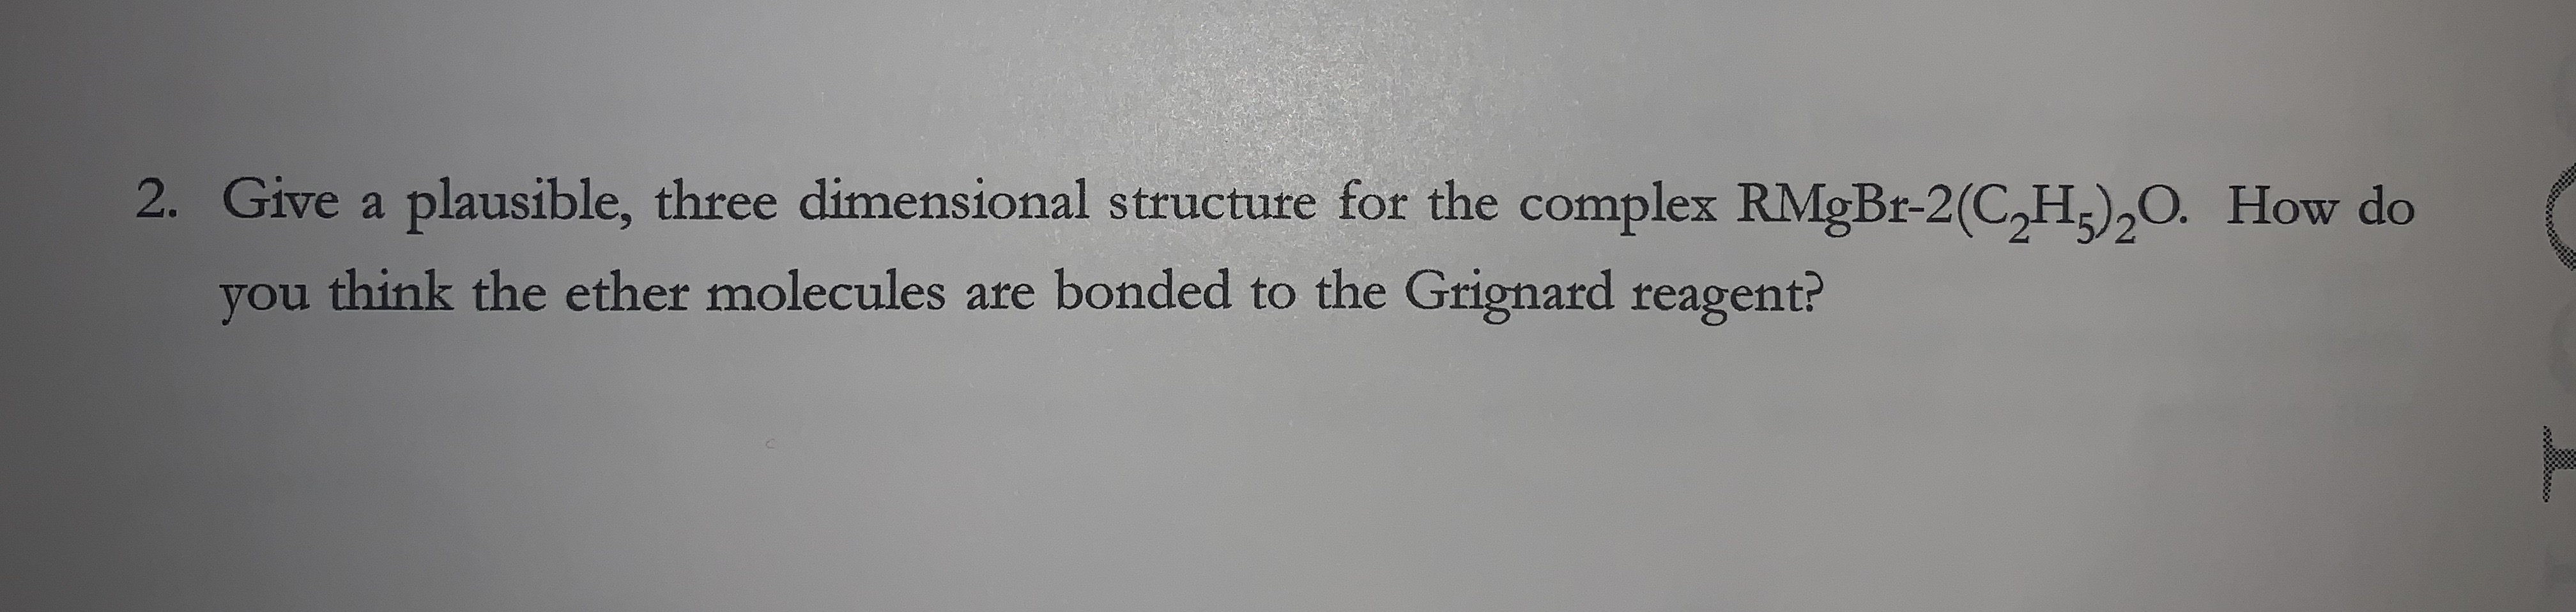 2. Give a plausible, three dimensional structure for the complex RMGBR-2(C,H;),O. How do think the ether molecules are bonded to the Grignard reagent? you